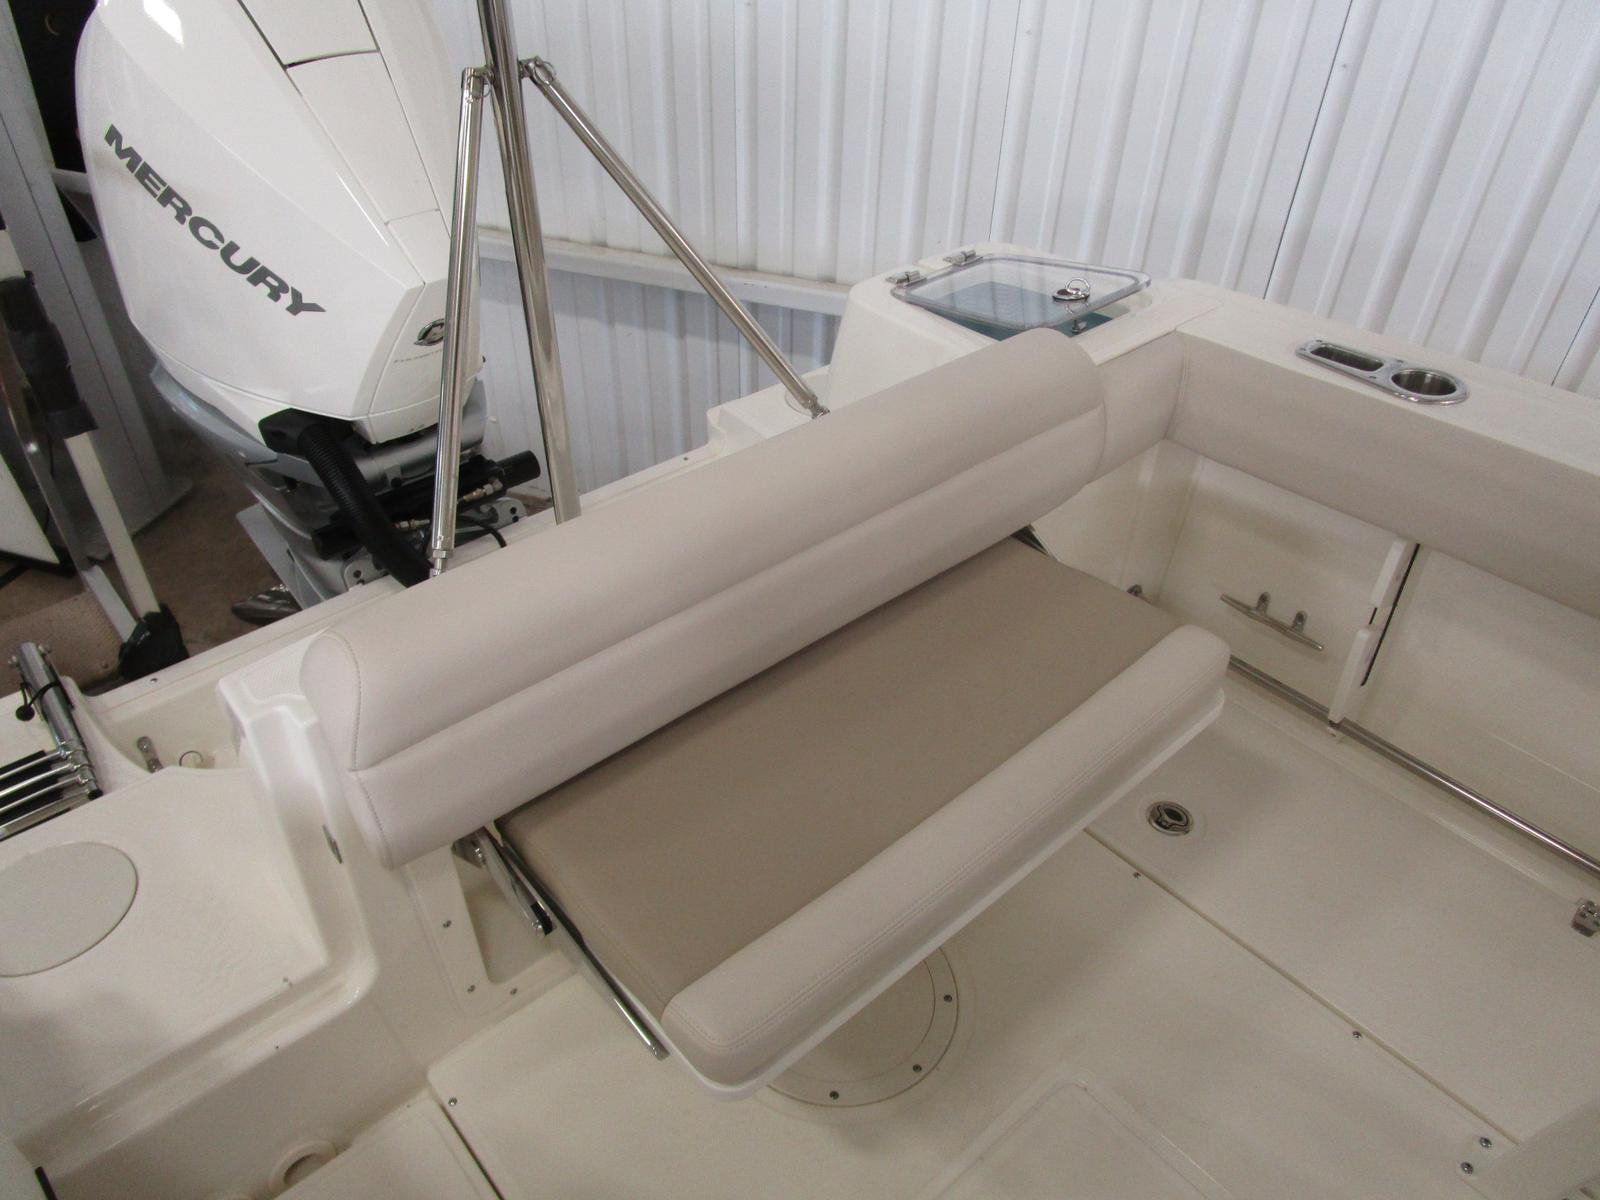 2019 Boston Whaler boat for sale, model of the boat is 230 Outrage & Image # 8 of 10